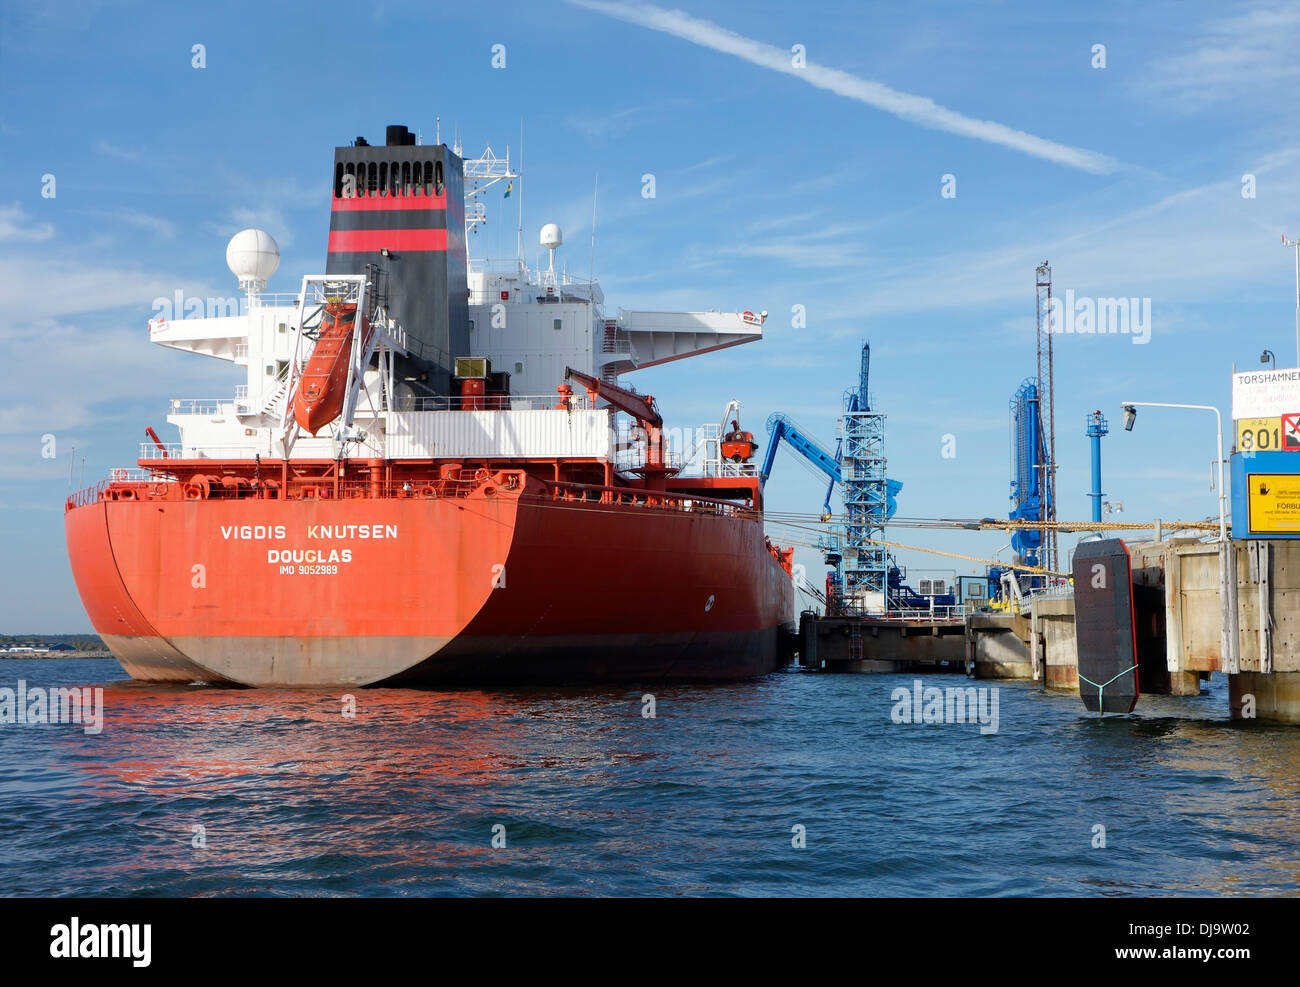 Tanker during loading operation - Stock Image